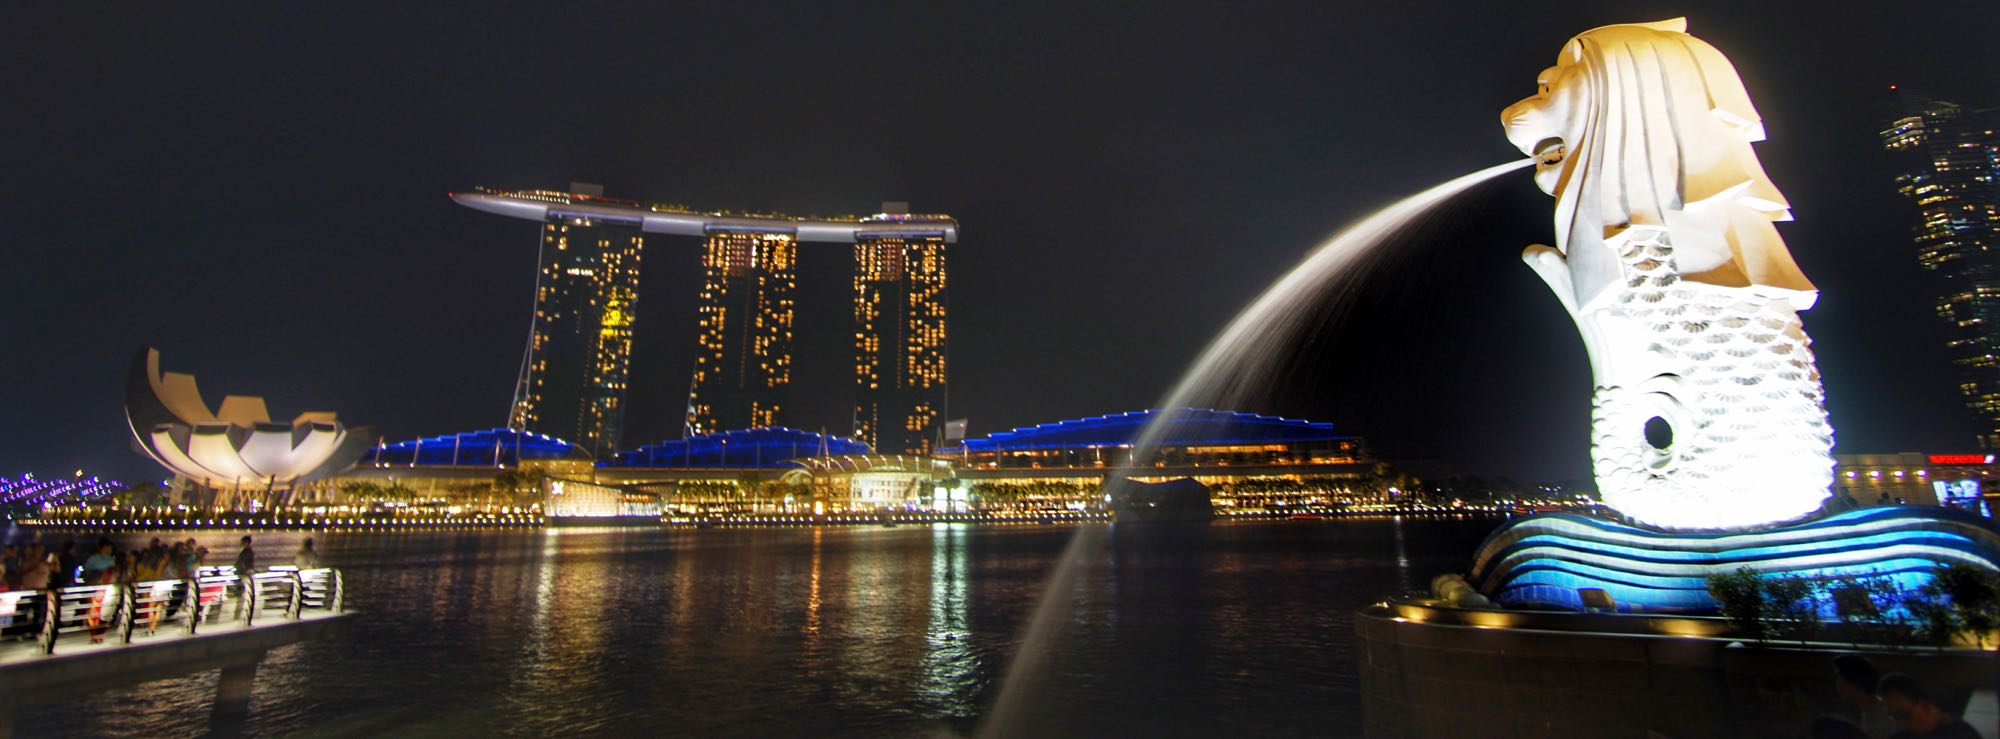 Merlion Marina Bay Sands Singapore